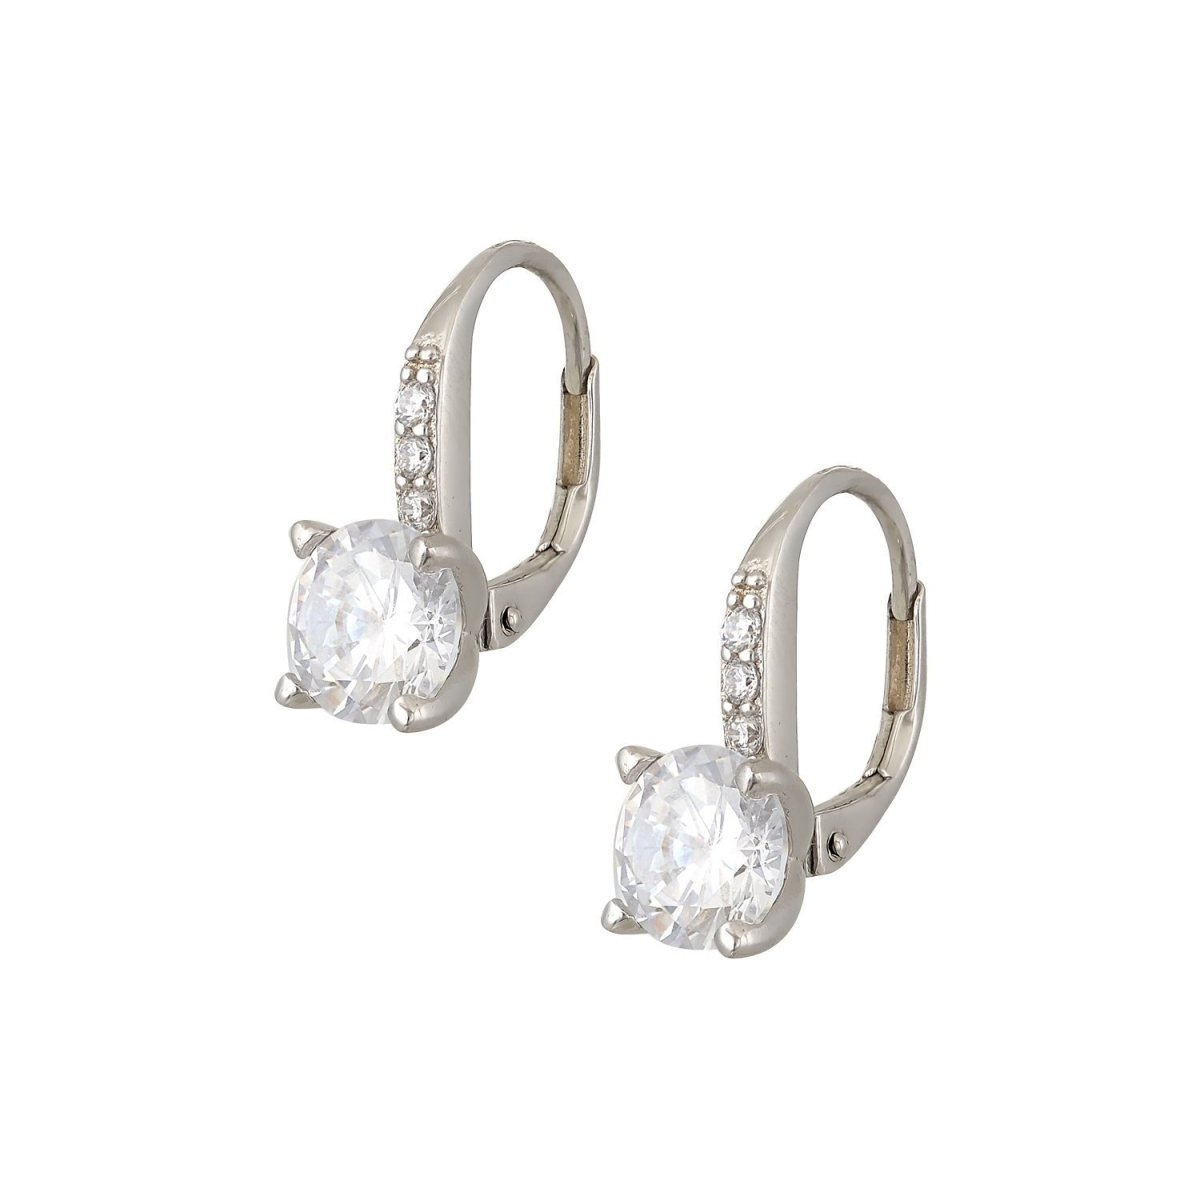 Pendant Earrings ER75482 With Silver and Zircon - Goldy Jewelry Store